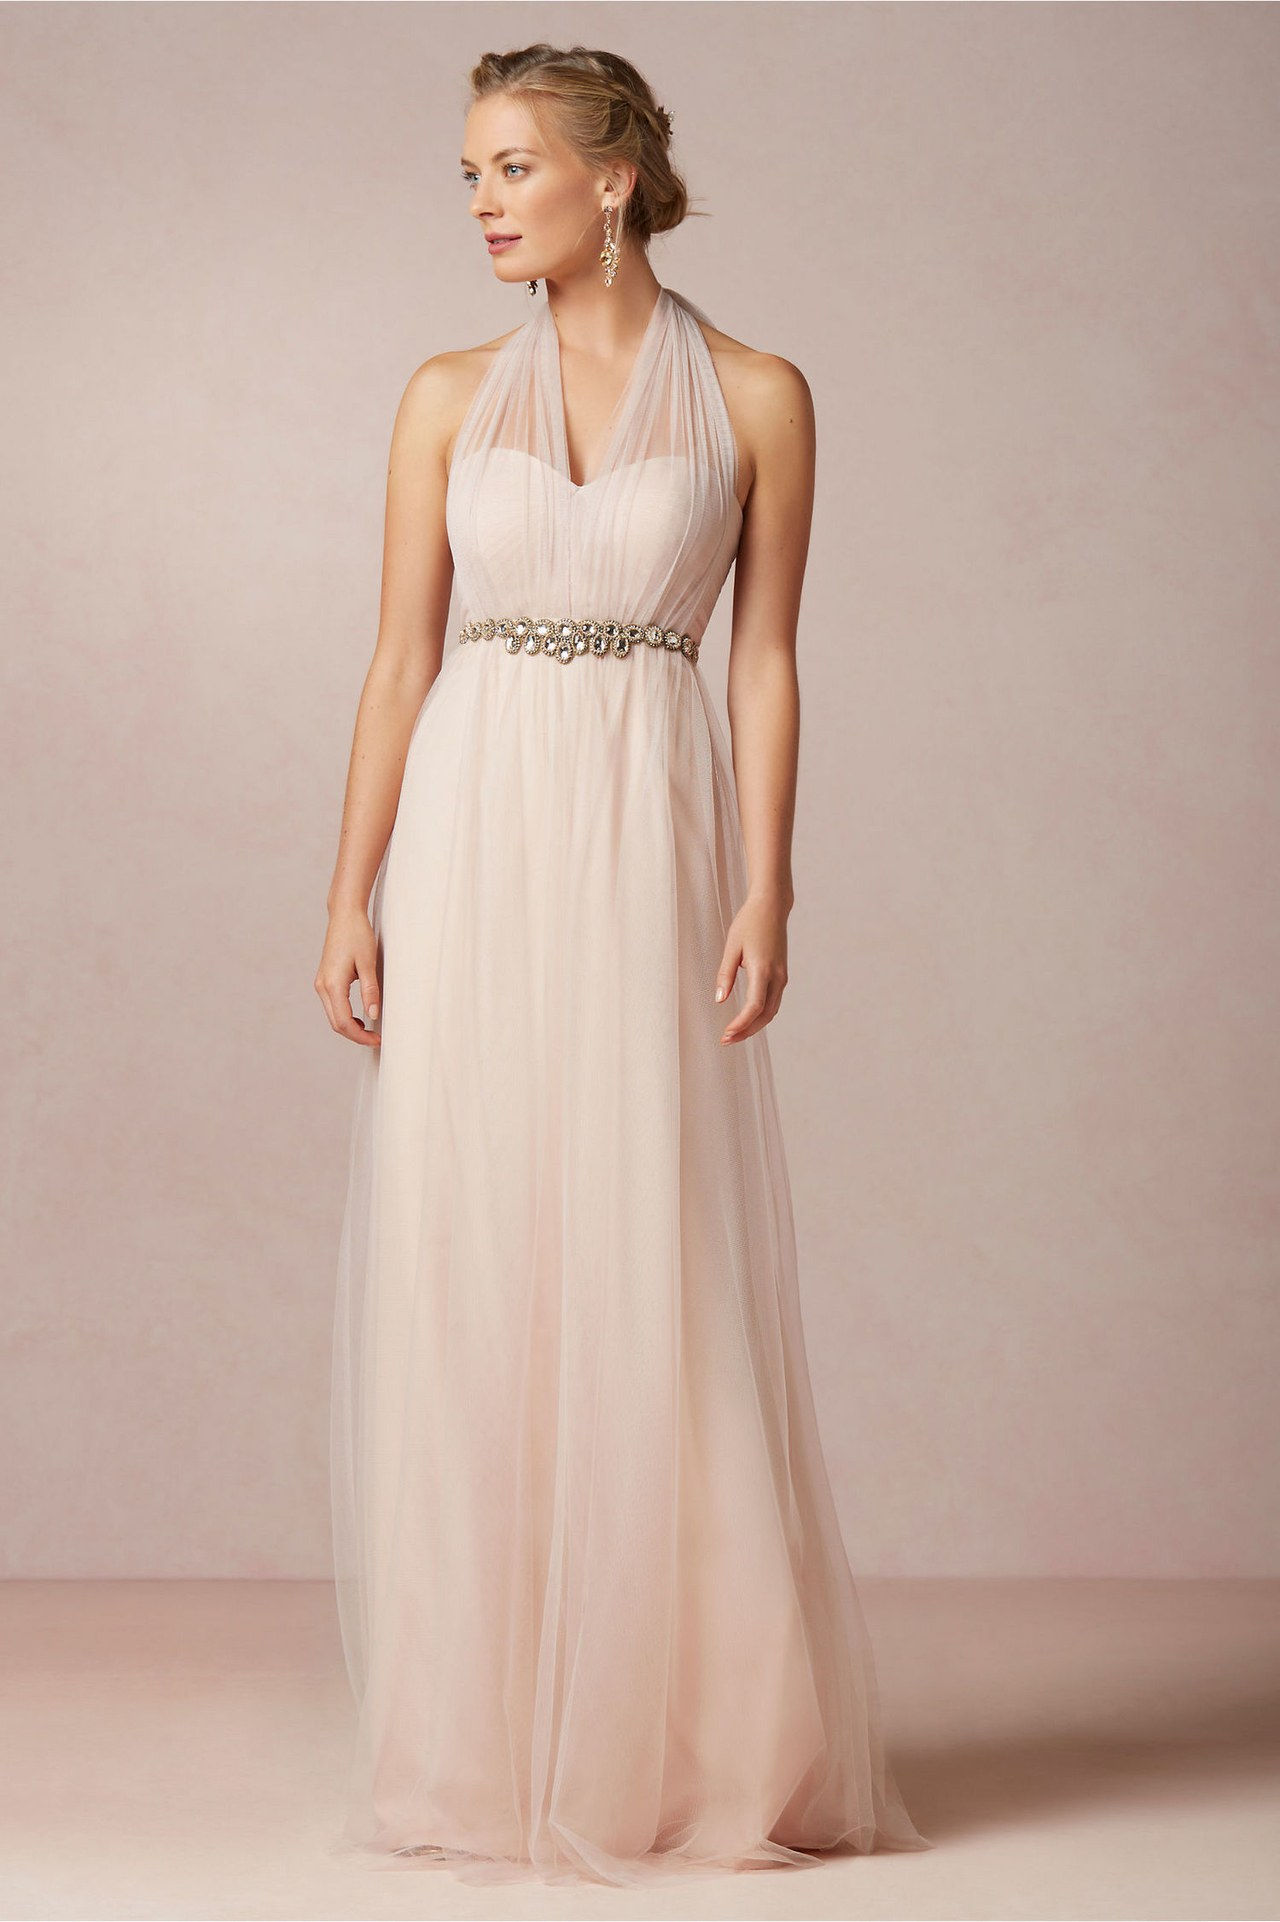 2b 2 in 1 wedding dresses wedding gowns mix and match wedding dresses bhldn 0430 courtesy